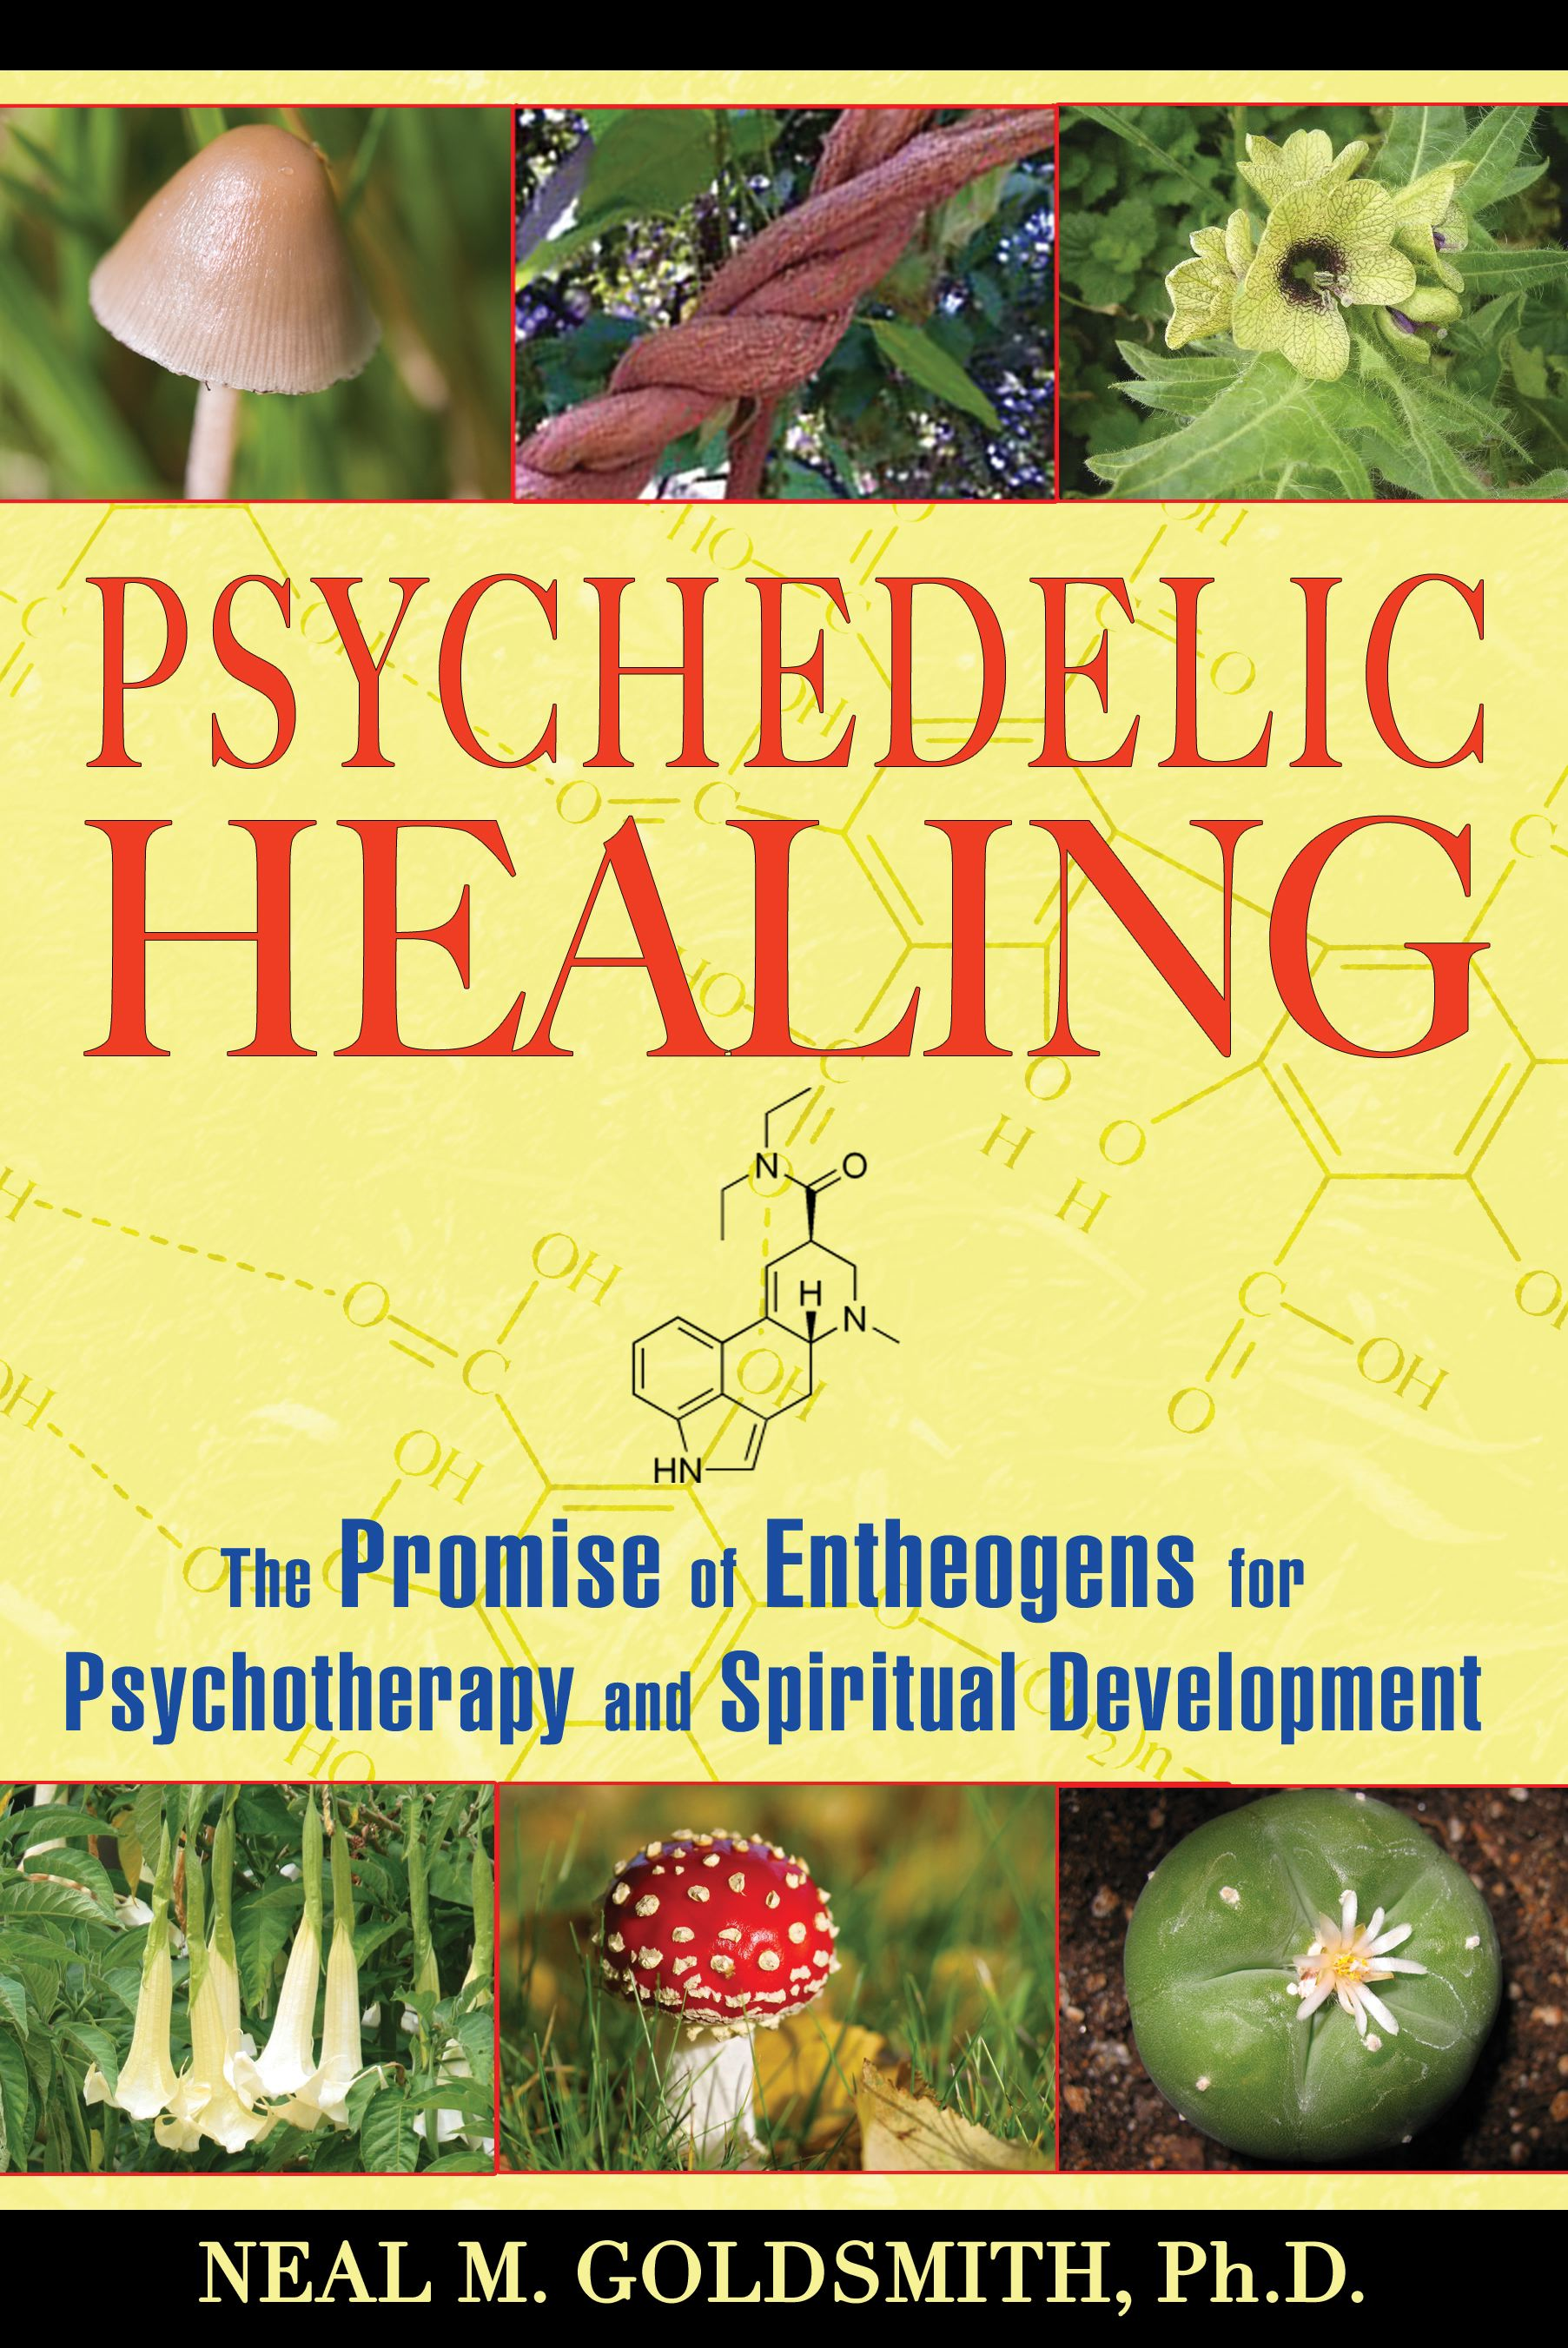 Psychedelic healing 9781594772504 hr